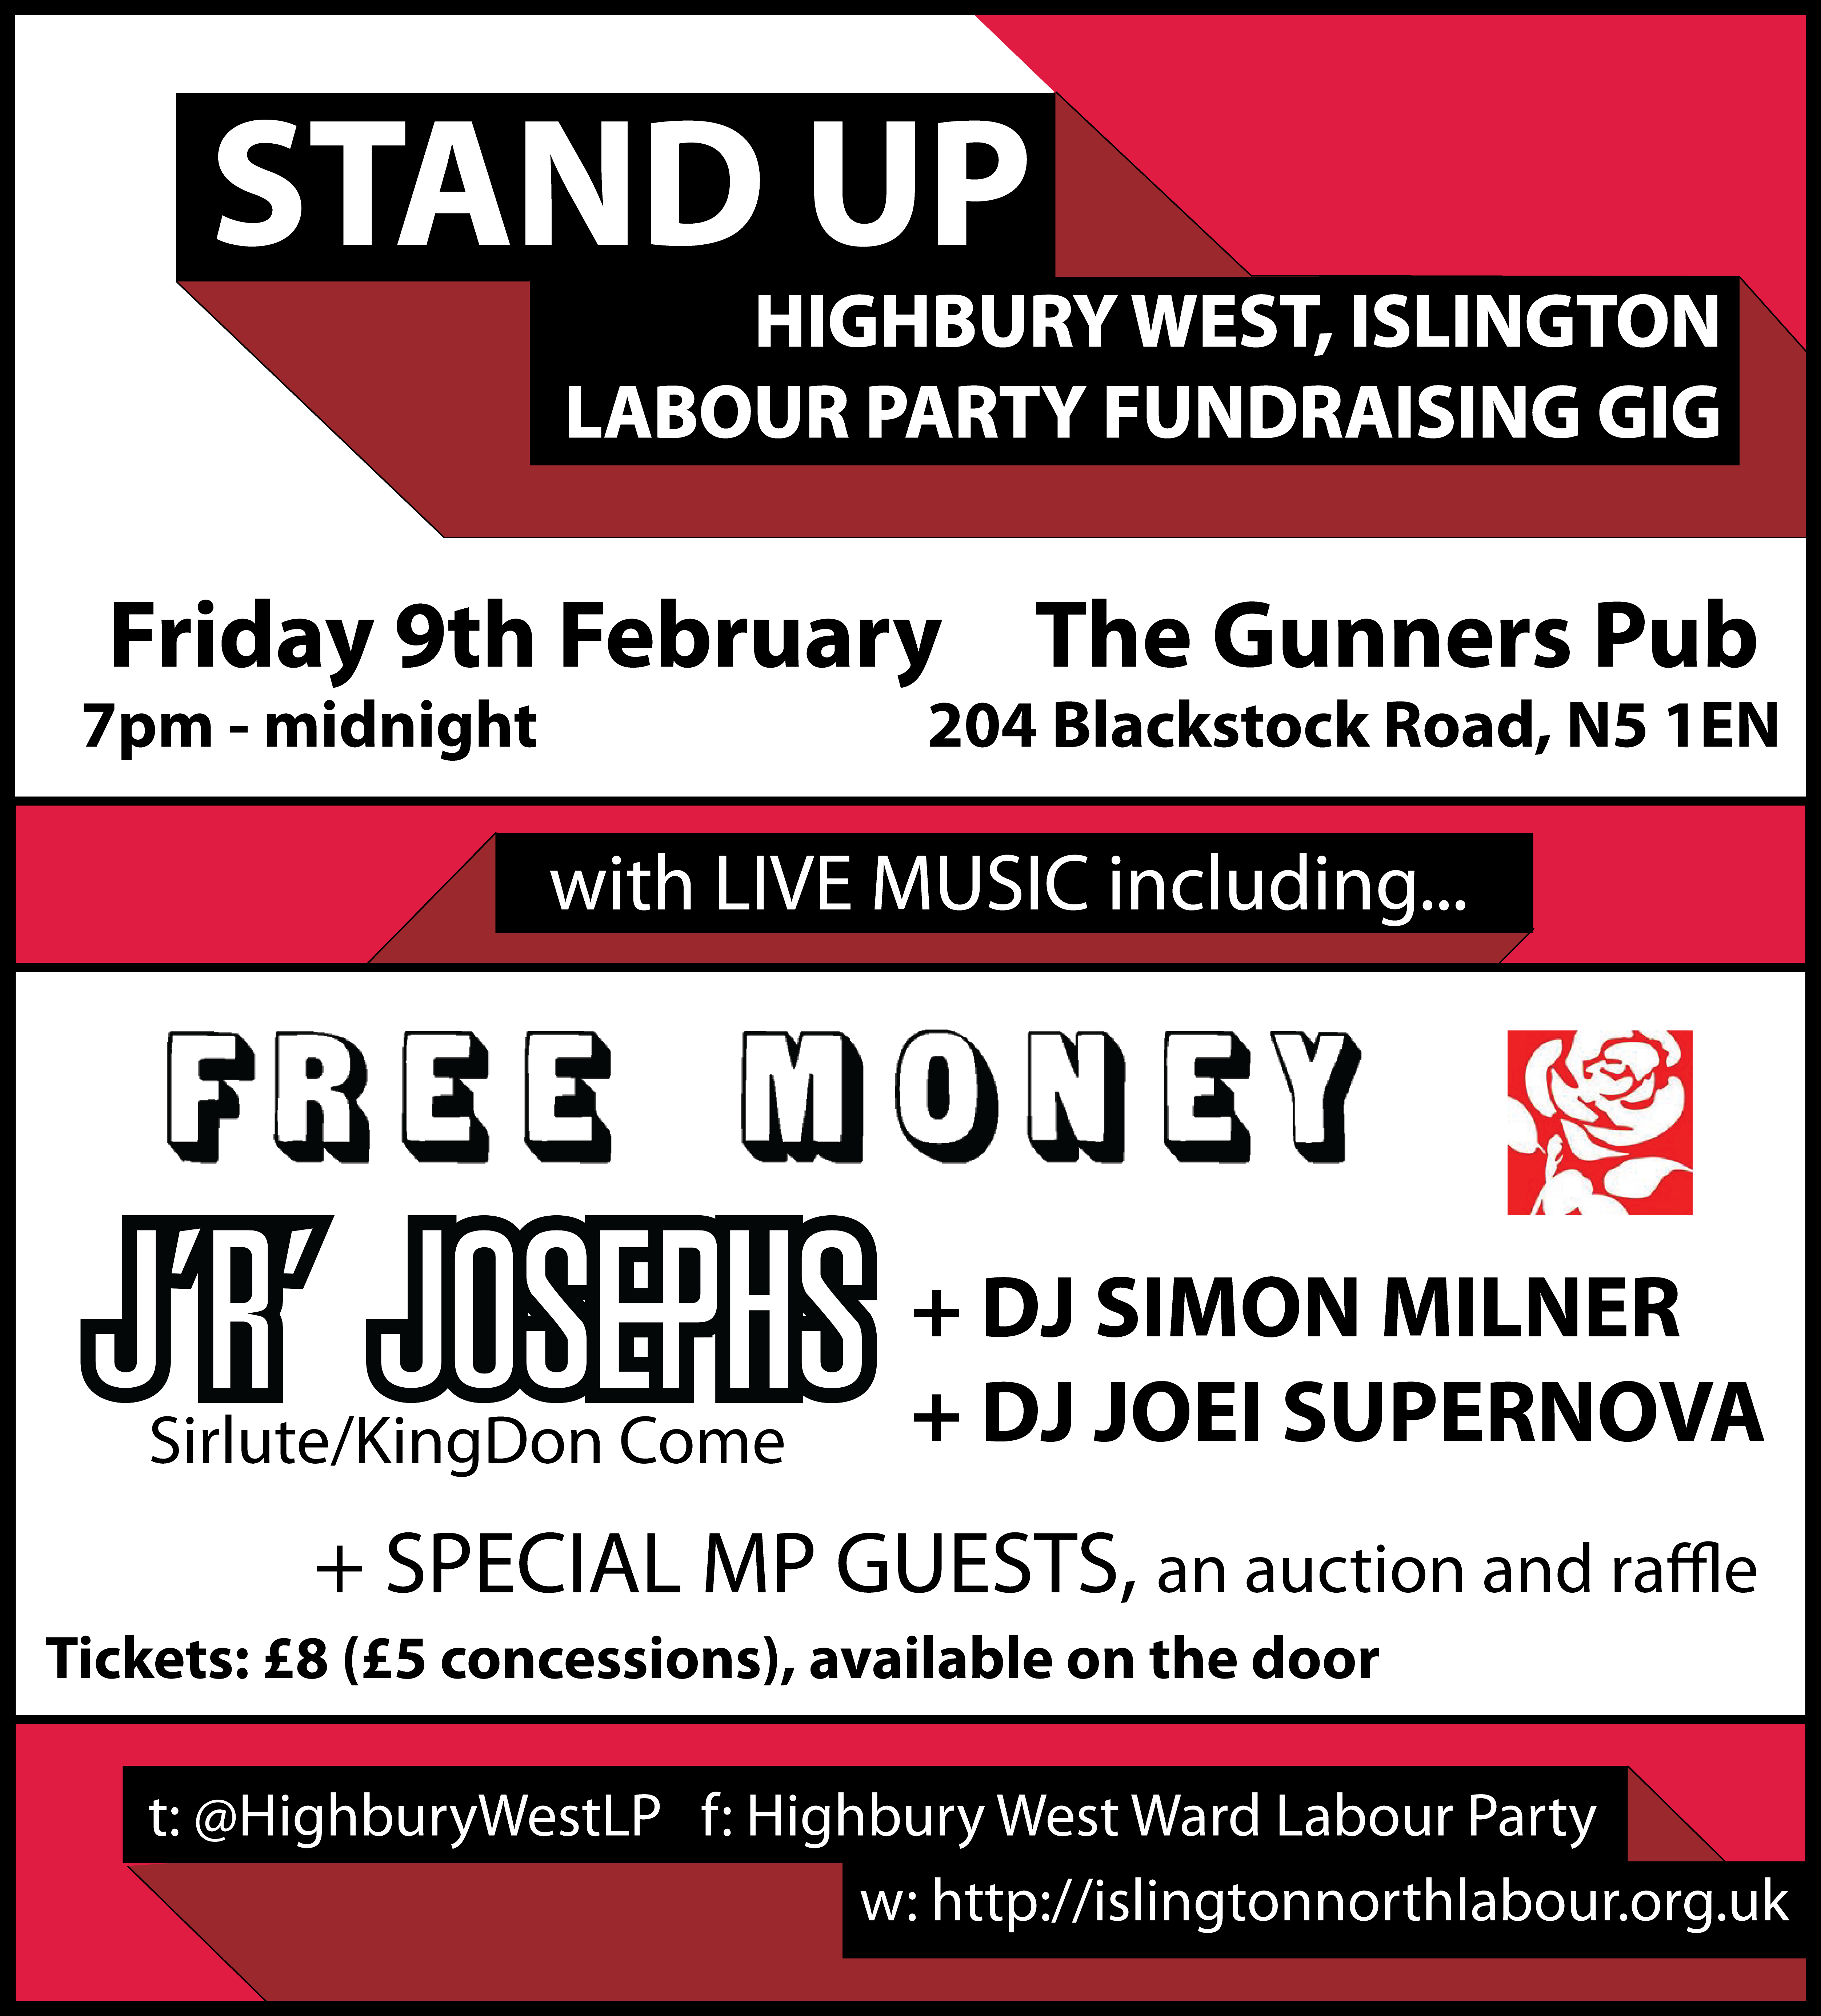 Stand_Up_Labour_Highbury_West_Fundraiser_Feb_2018_version_2.png